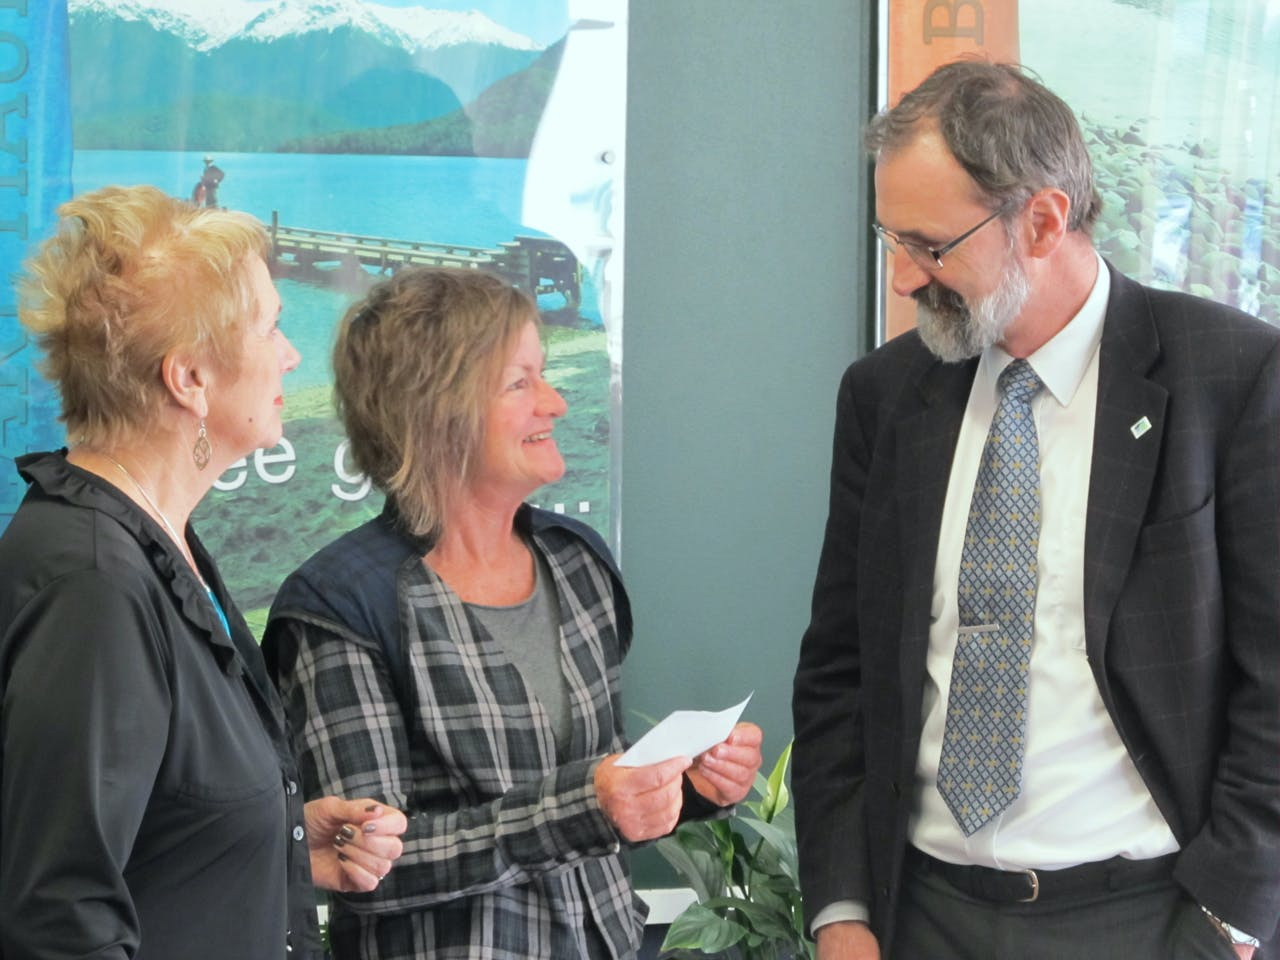 FMC's Robin McNeil hands over a cheque for $1000 to Southland District Council Mayor Frana Cardno (left) and Save Fiordland Chairperson Daphne Taylor